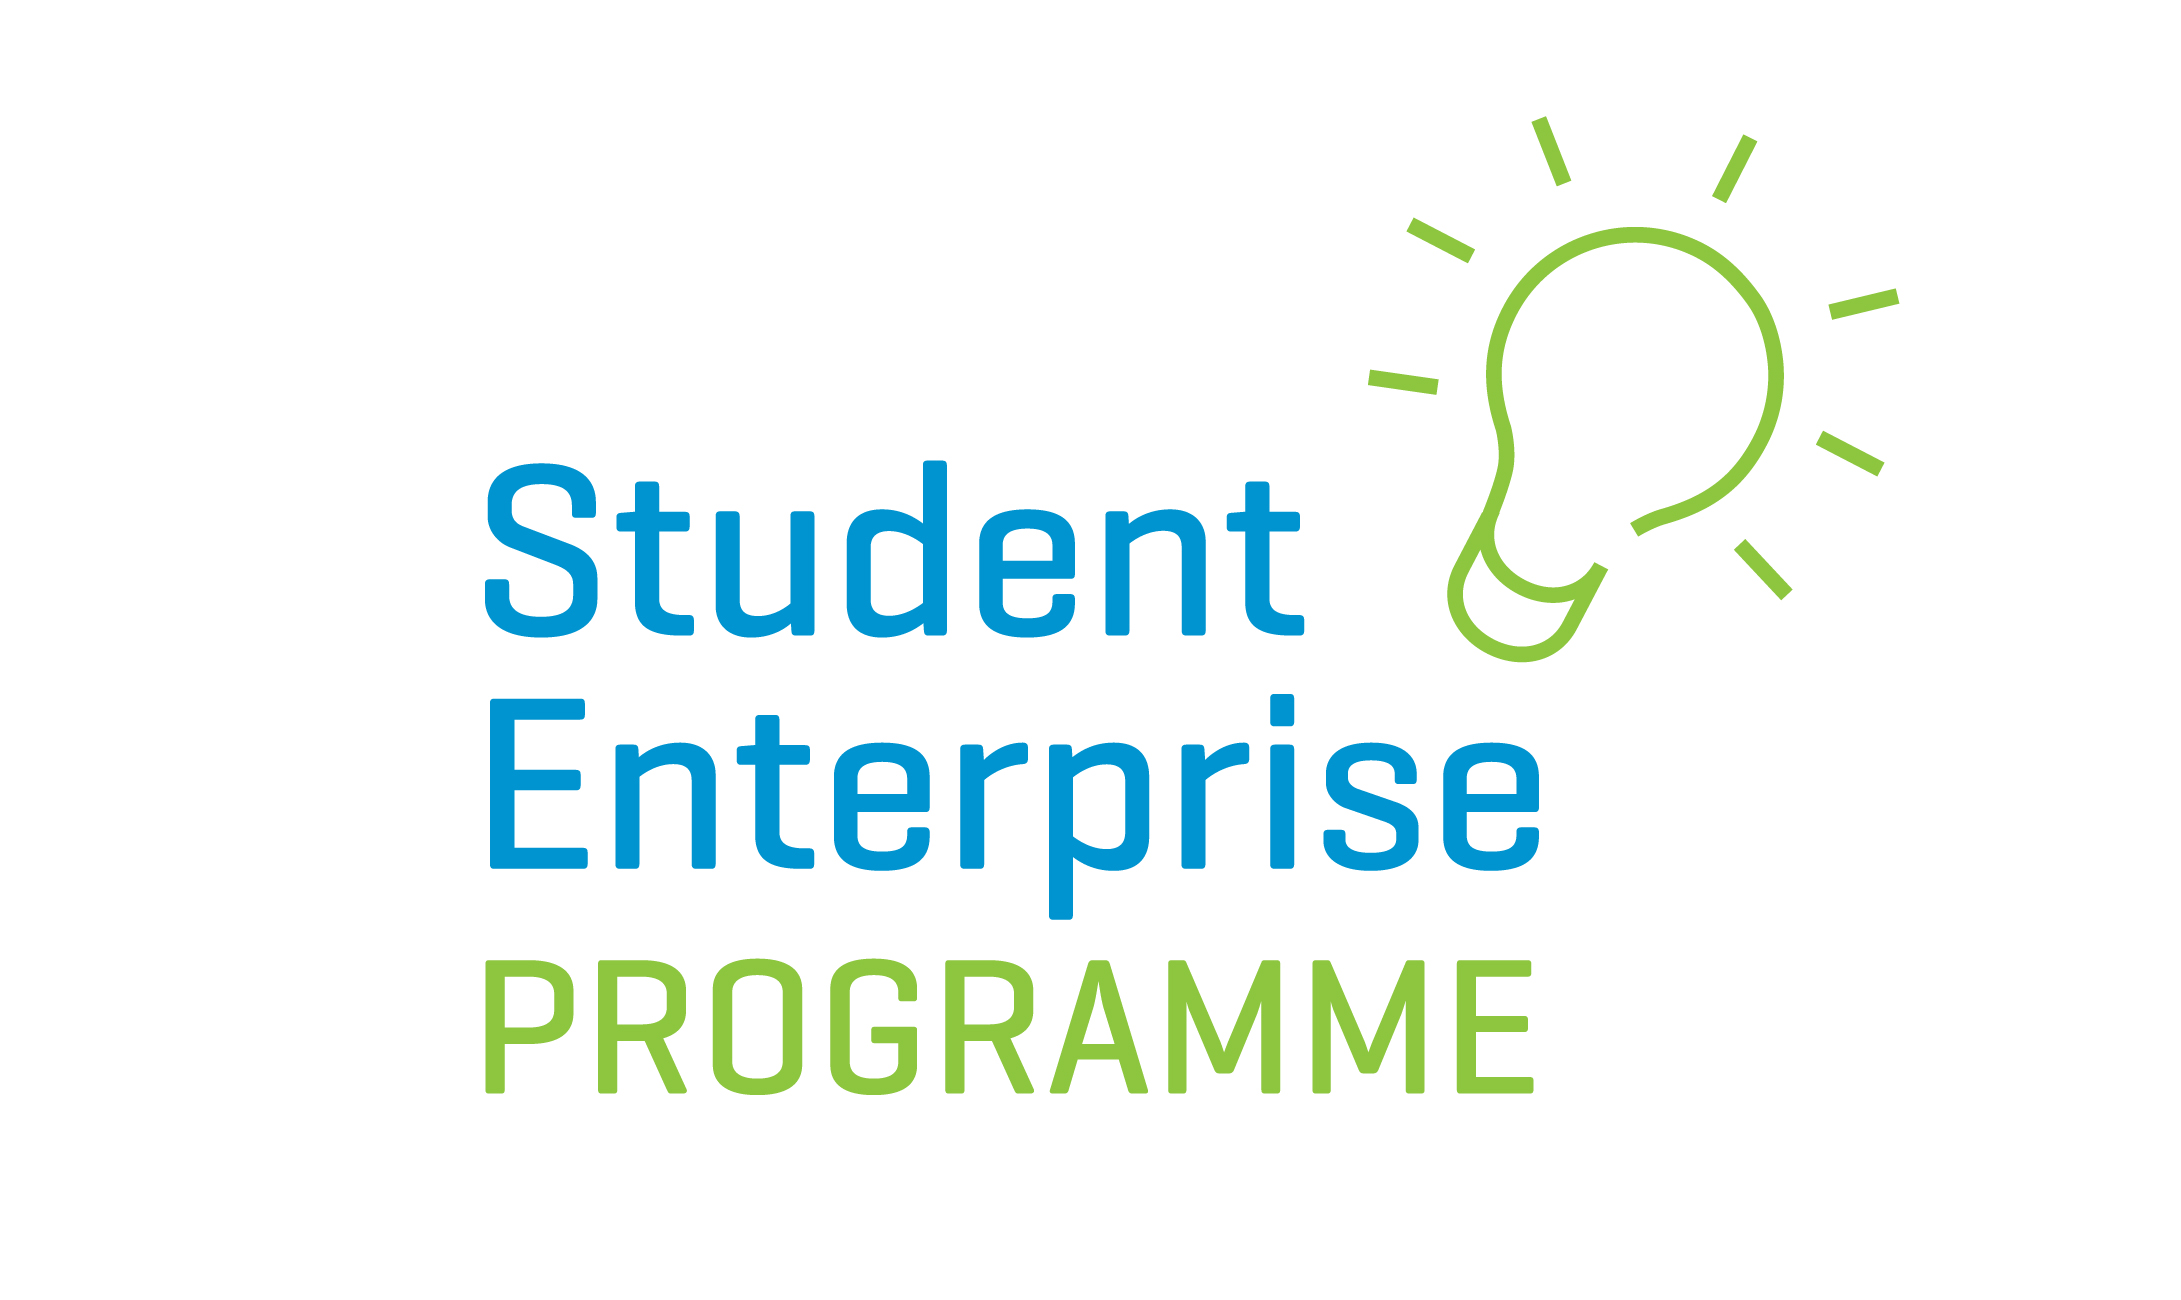 Tuesday - Student Enterprise Programme Logo 2017